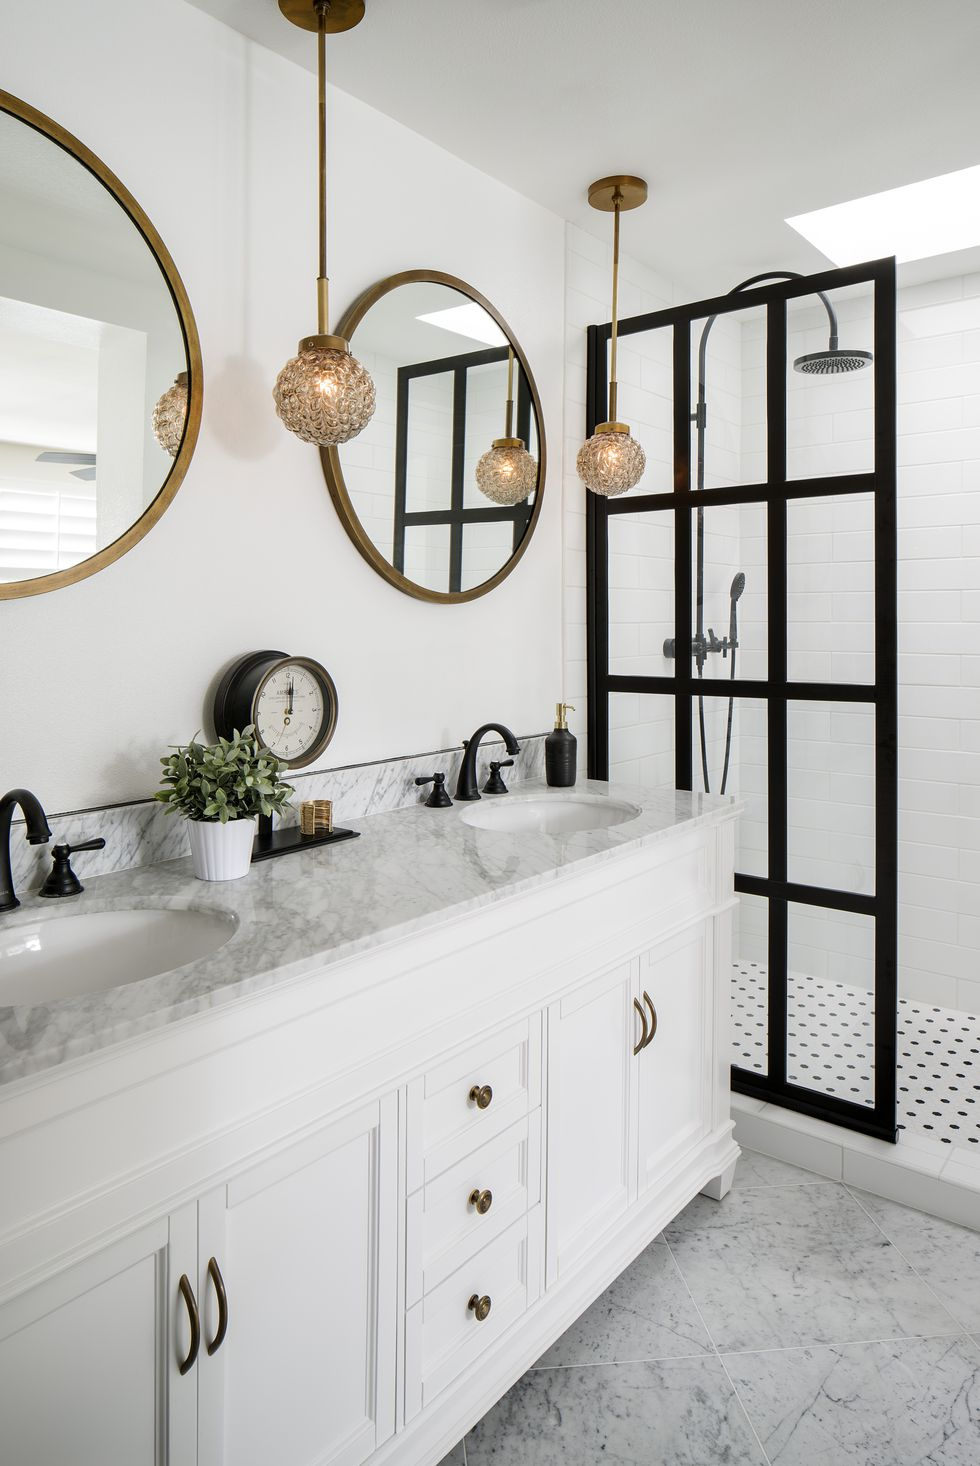 Small Bathroom Design Ideas to Make the Most of Your Space ...